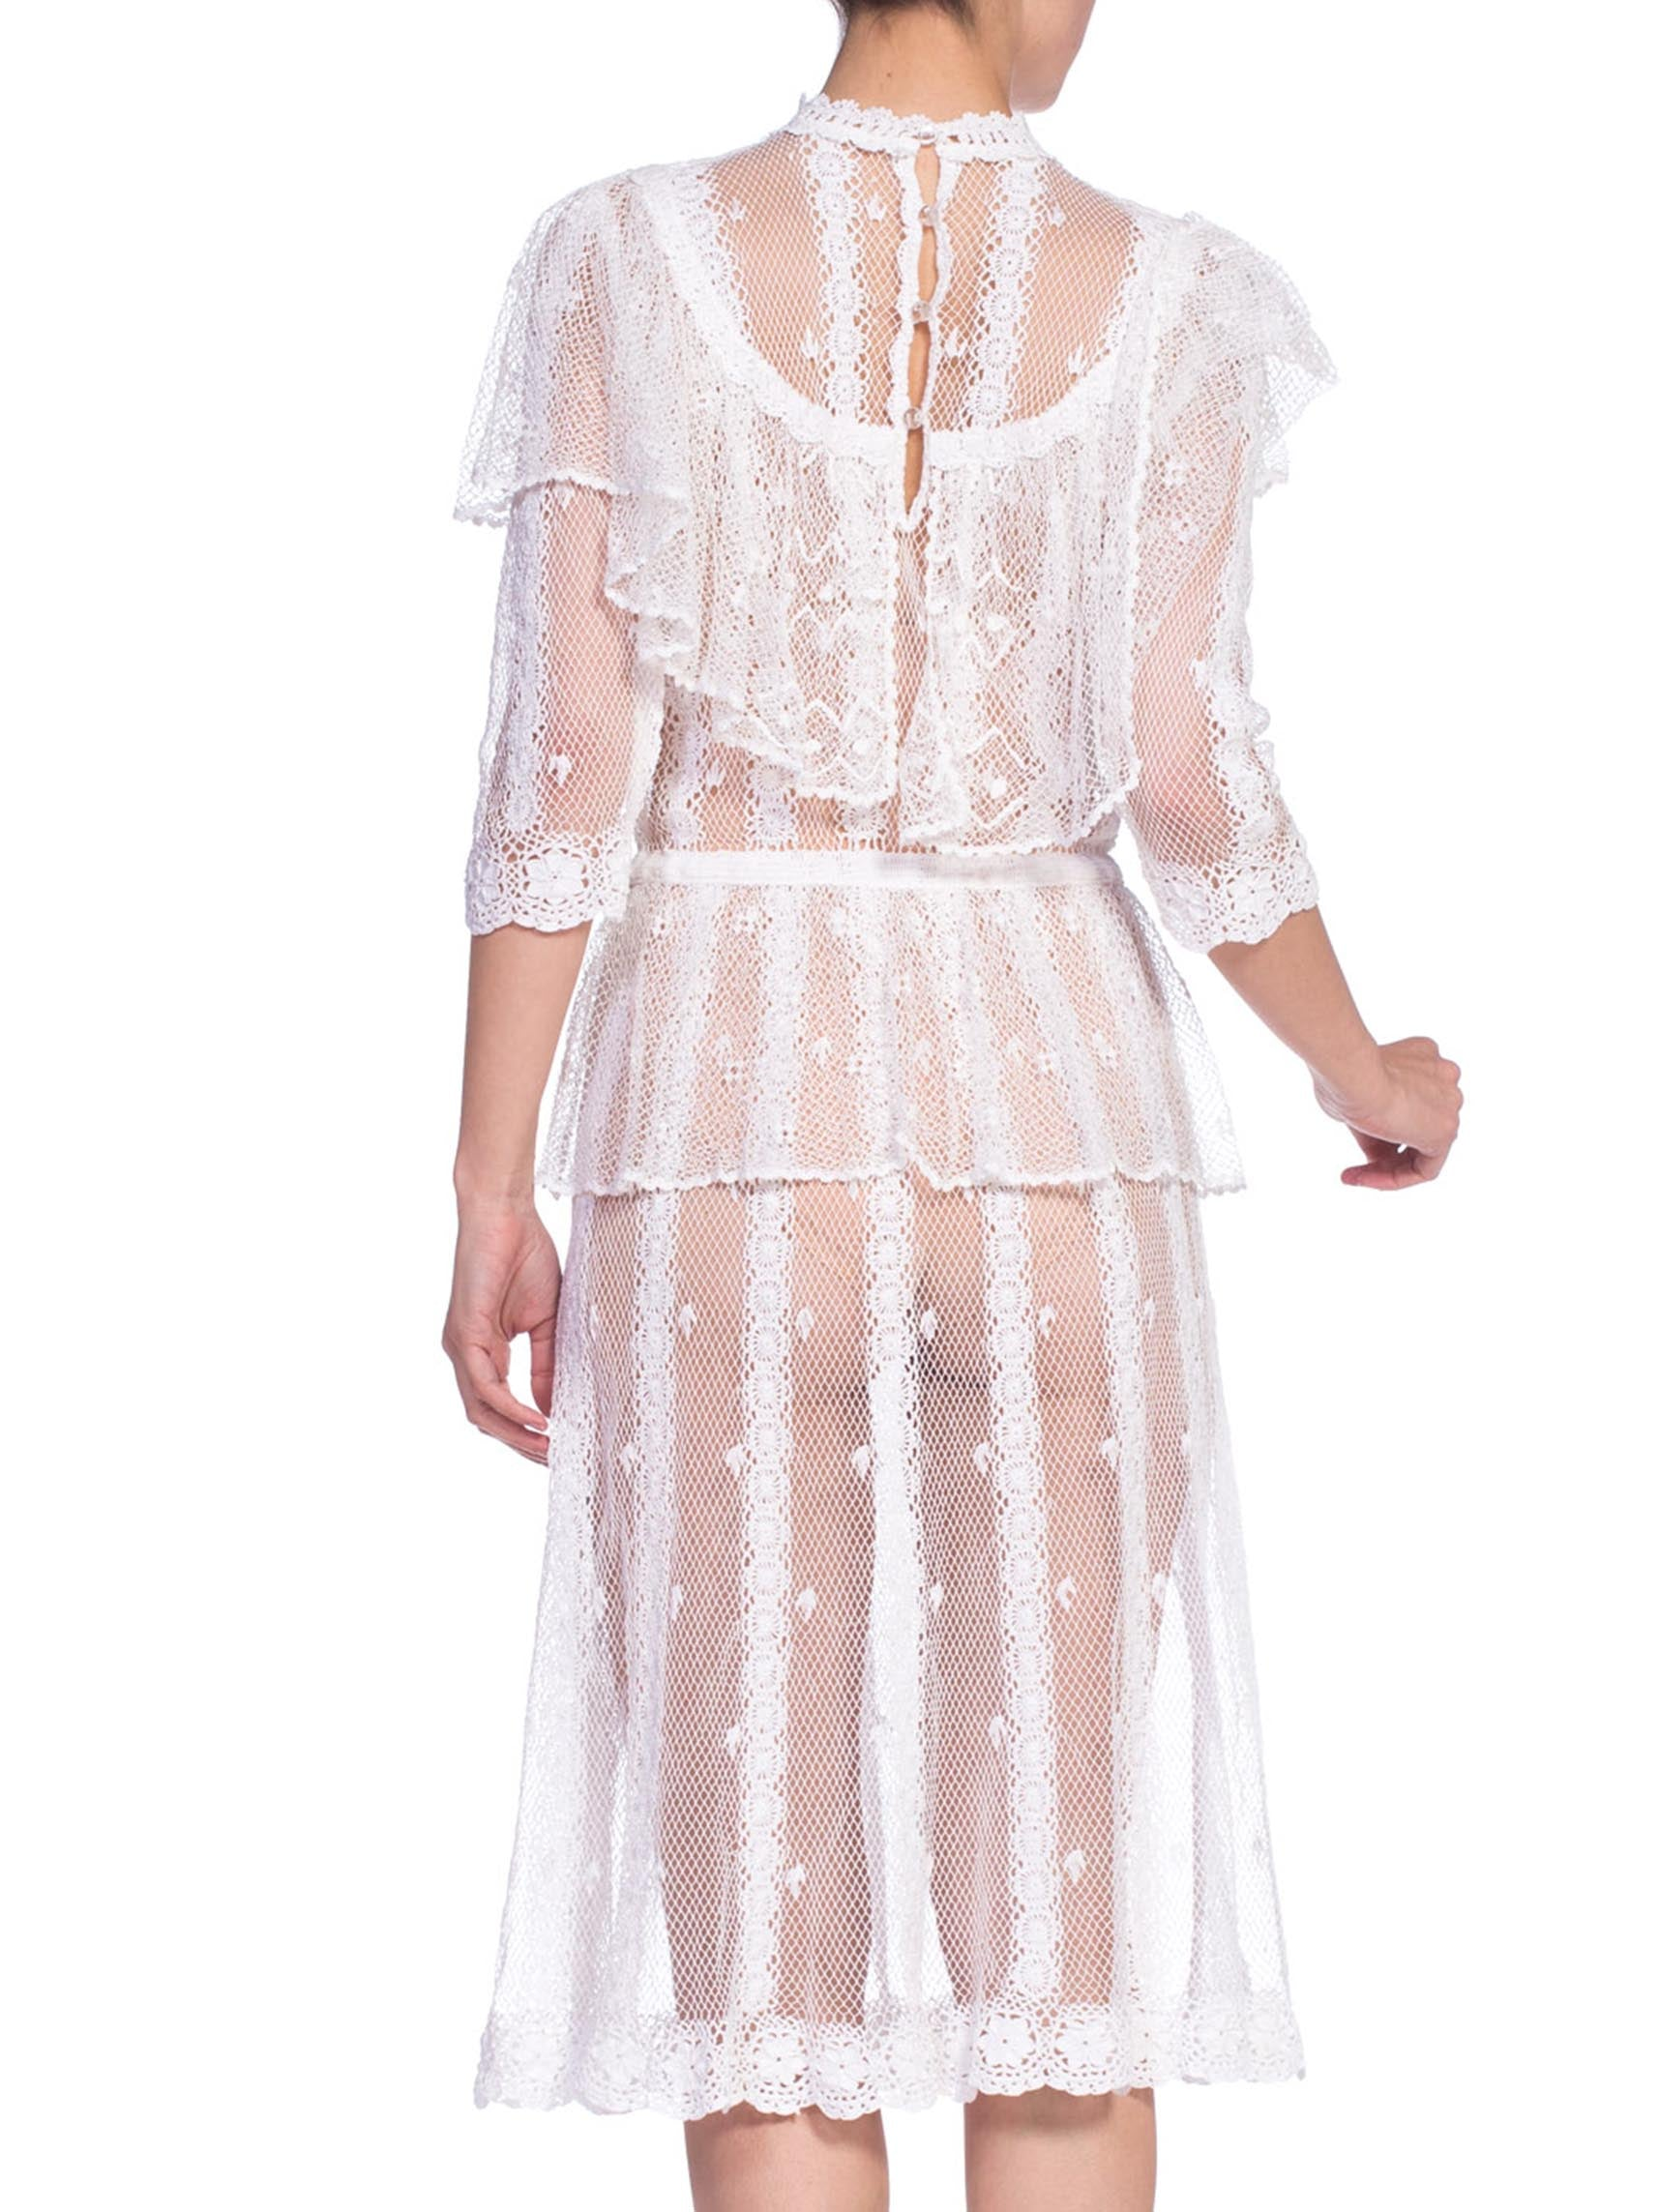 1970's Victorian 1890's Style White Hand Crochet Lace Dress